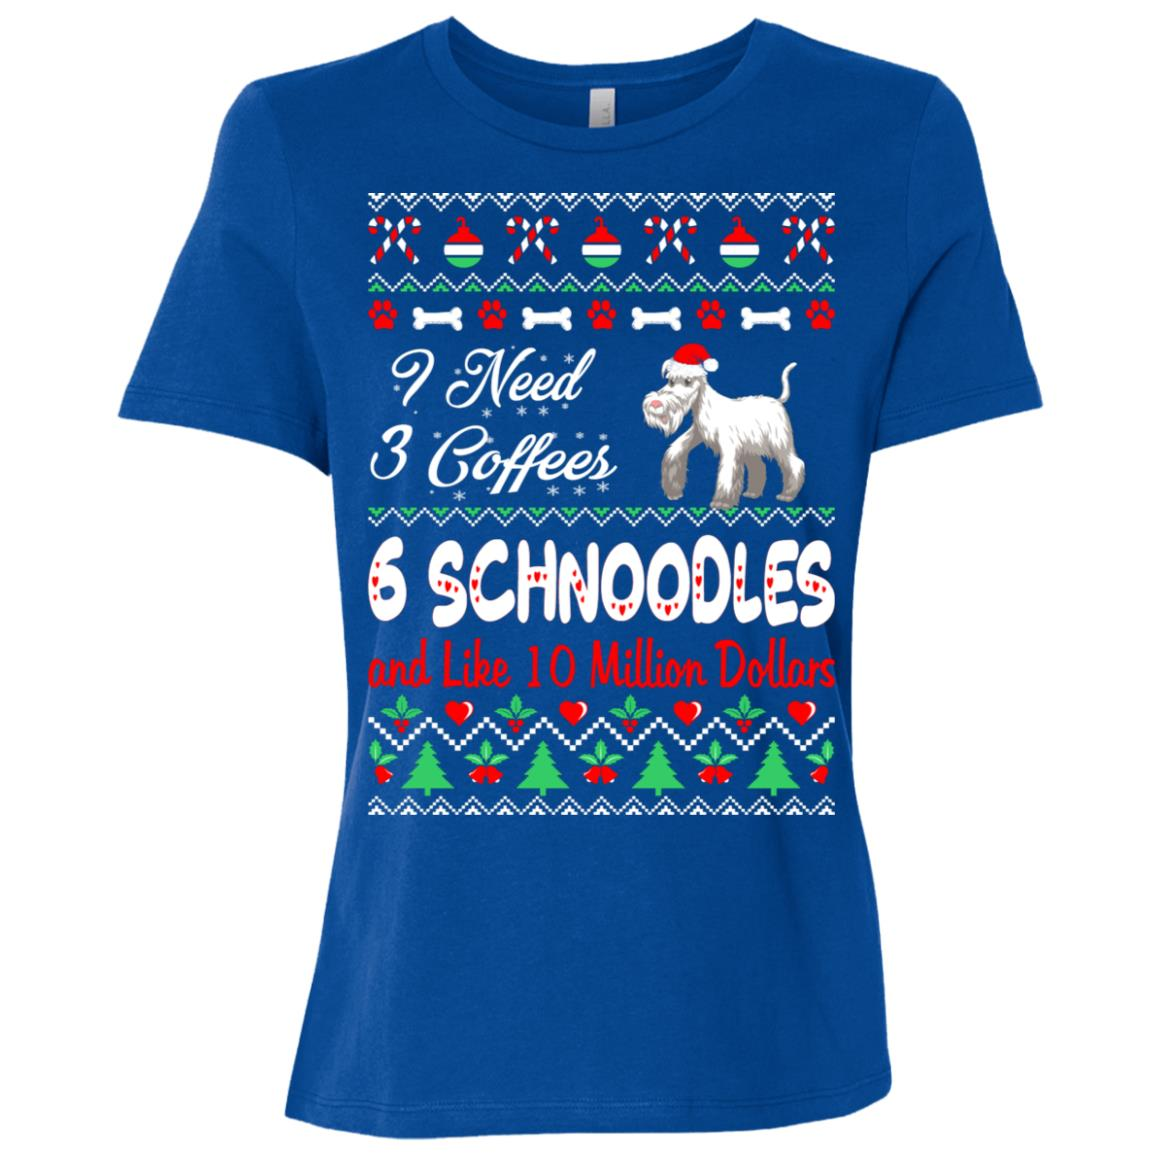 Need 3 Coffees 6 Schnoodles Christmas Ugly Sweater Women Short Sleeve T-Shirt